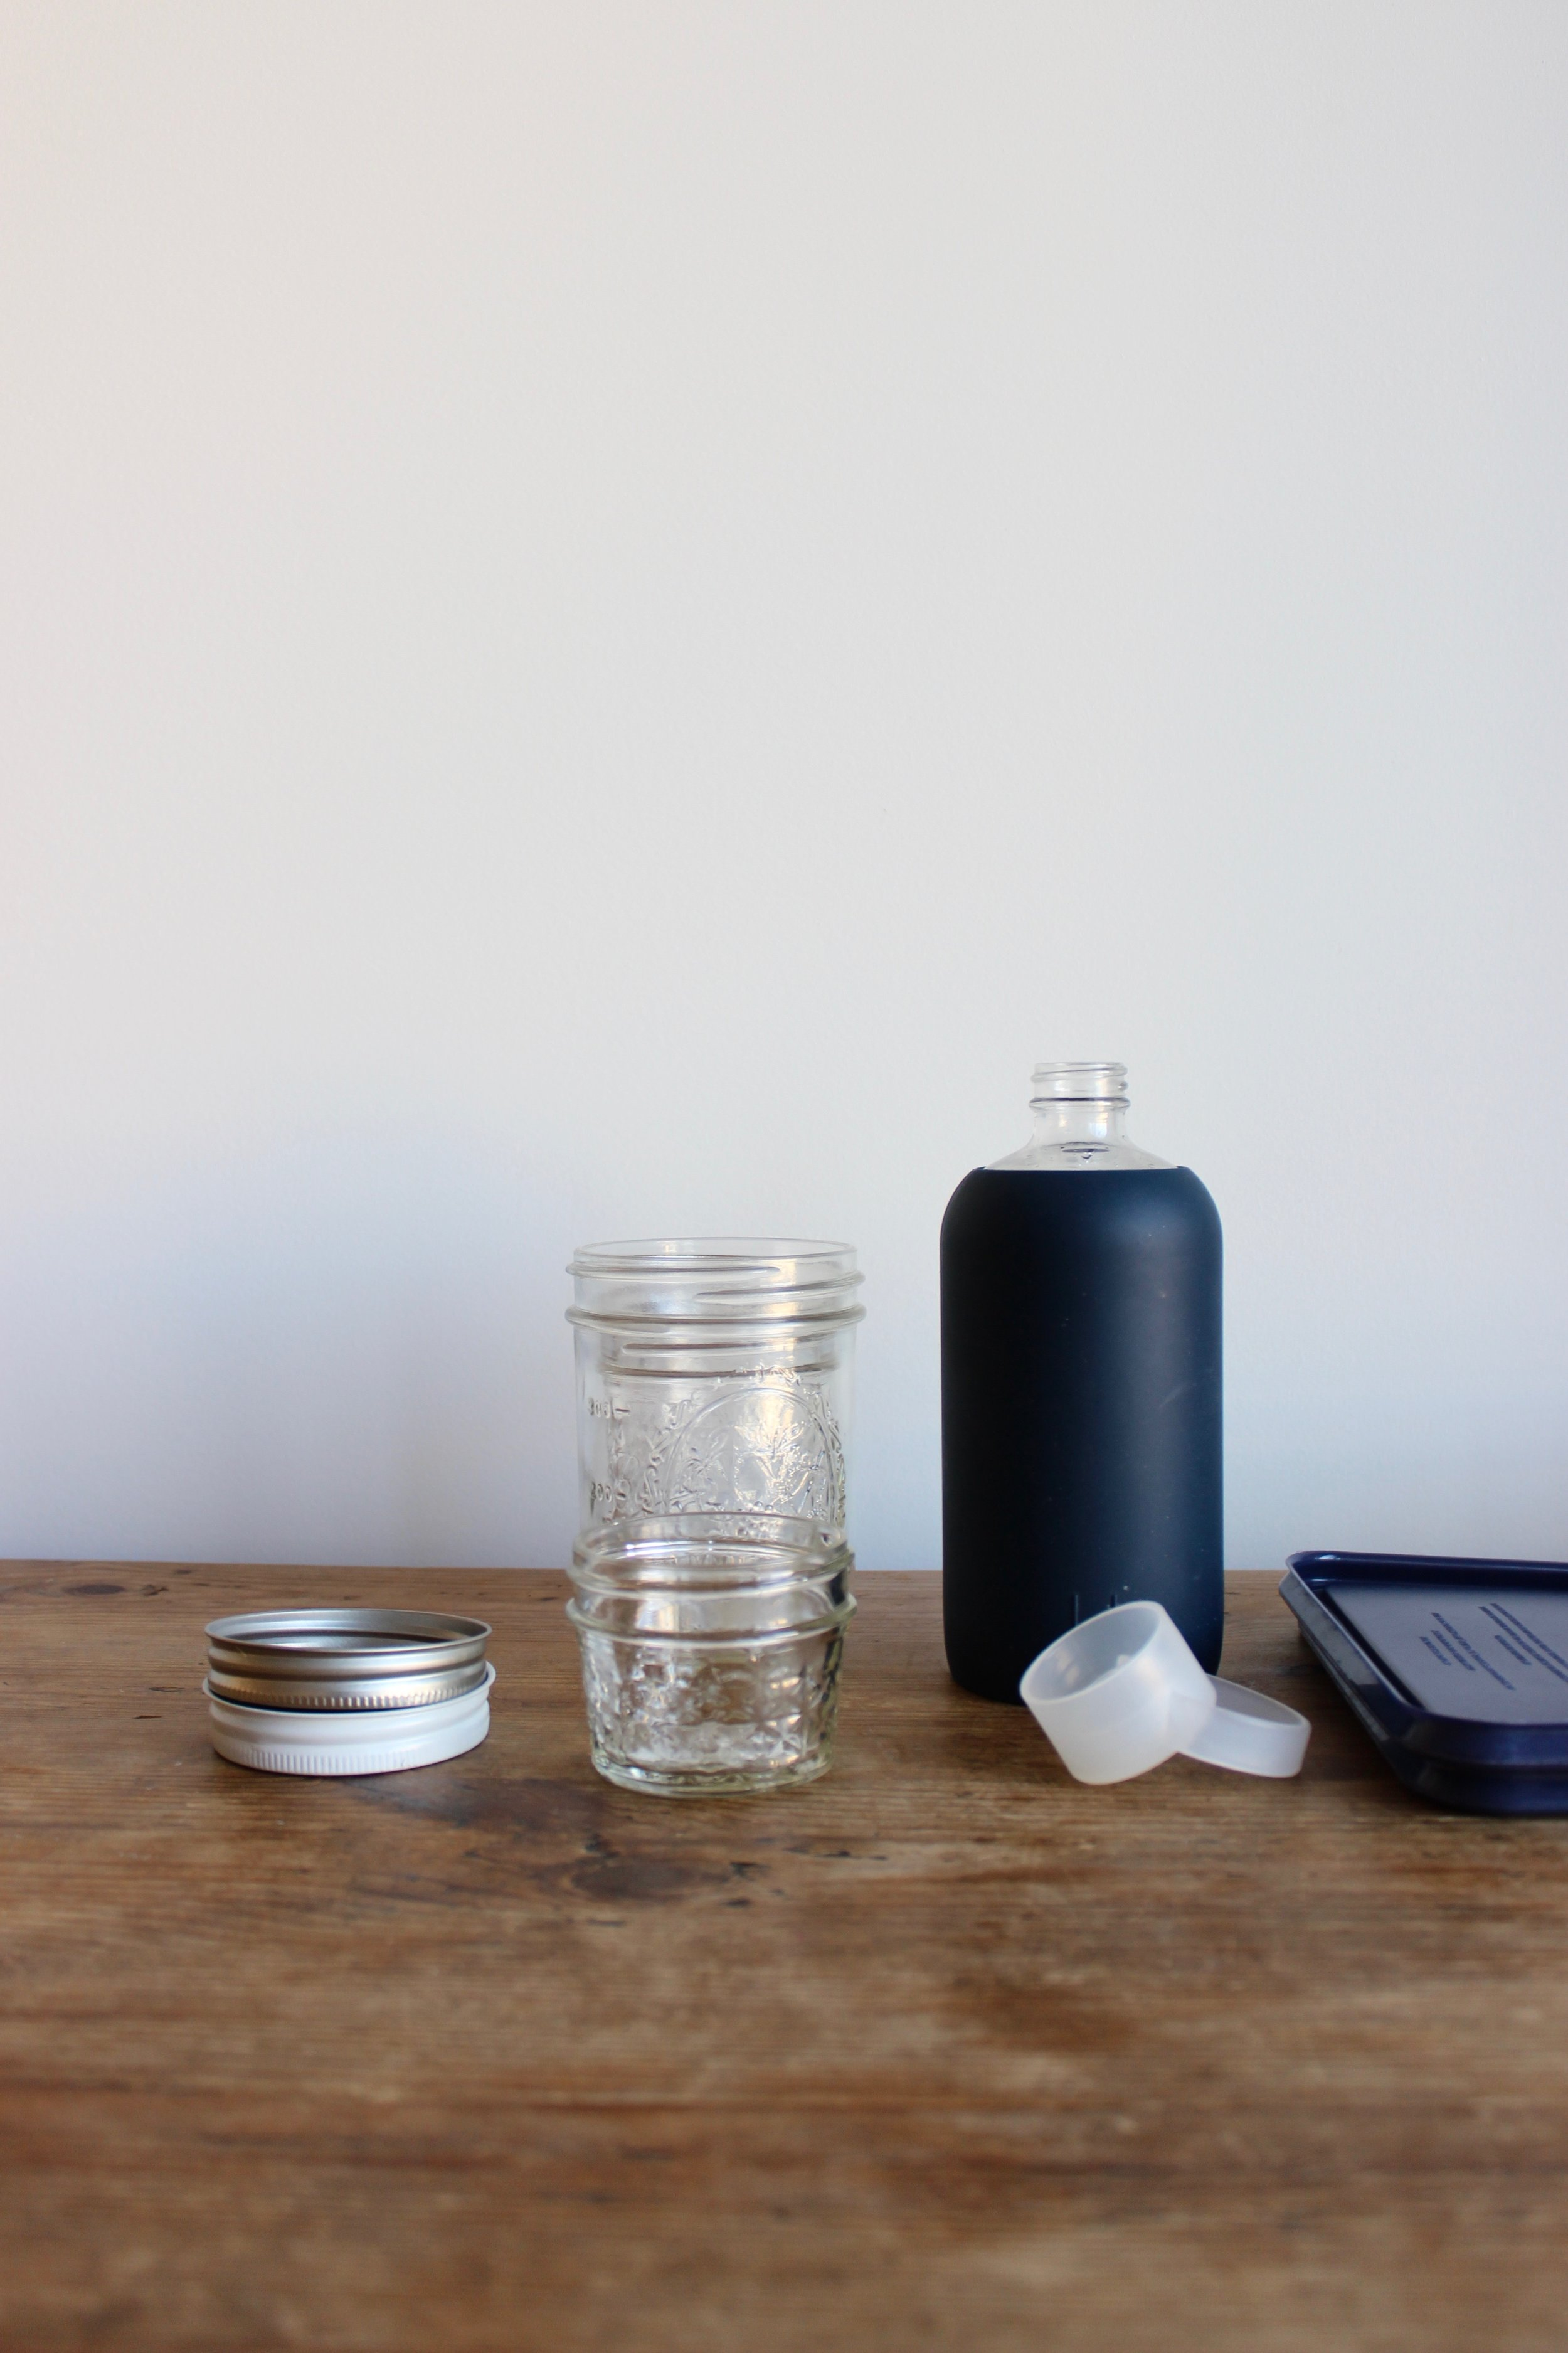 Buying brand-new lids to give new life to secondhand containers, for a zero-waste home and kitchen | Litterless